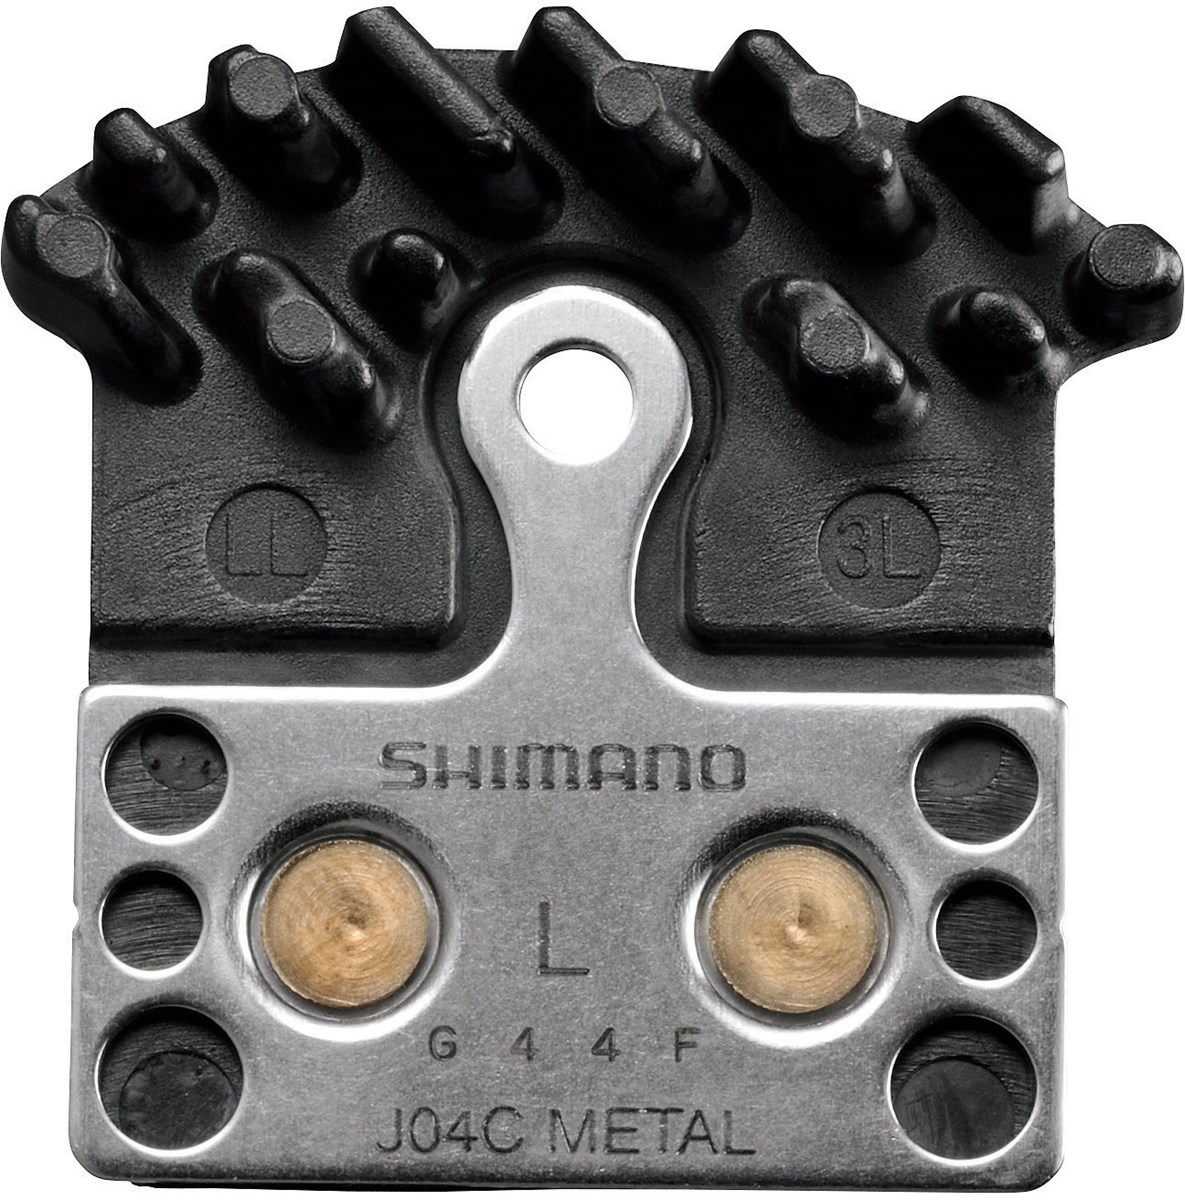 Shimano J04C metal disc brake pad and spring, with fin for XTR/XT/SLX